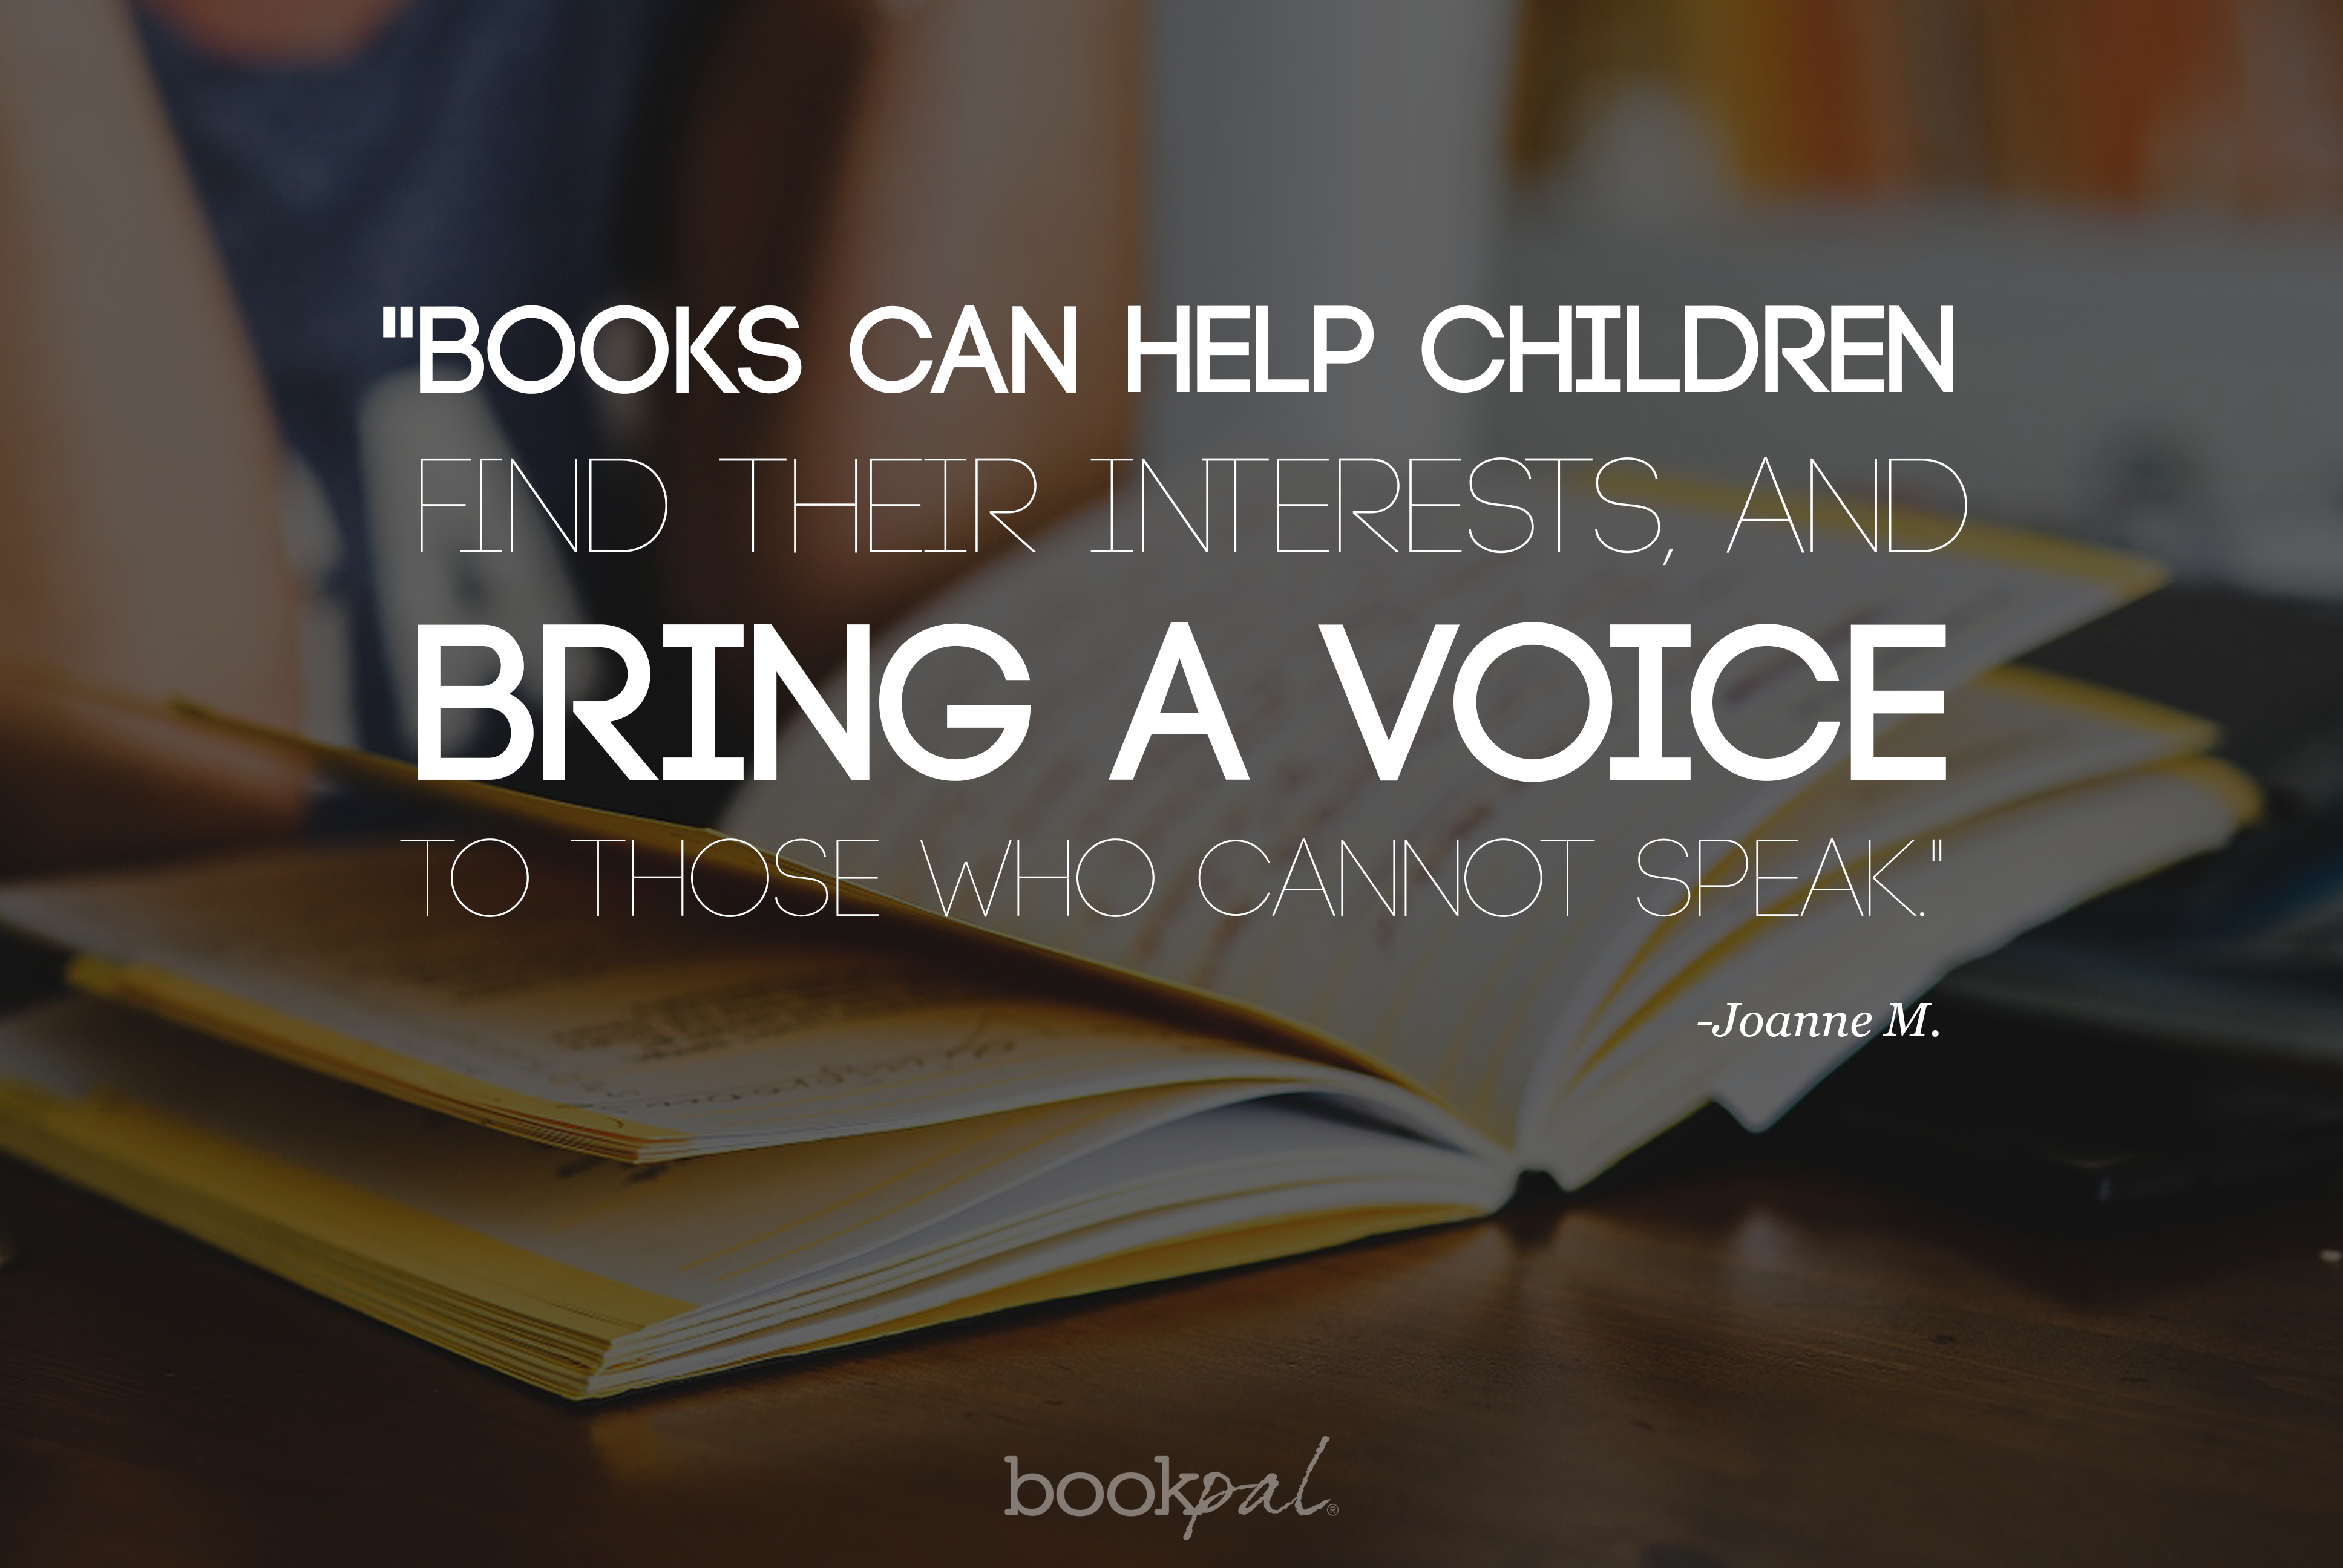 books are powerful